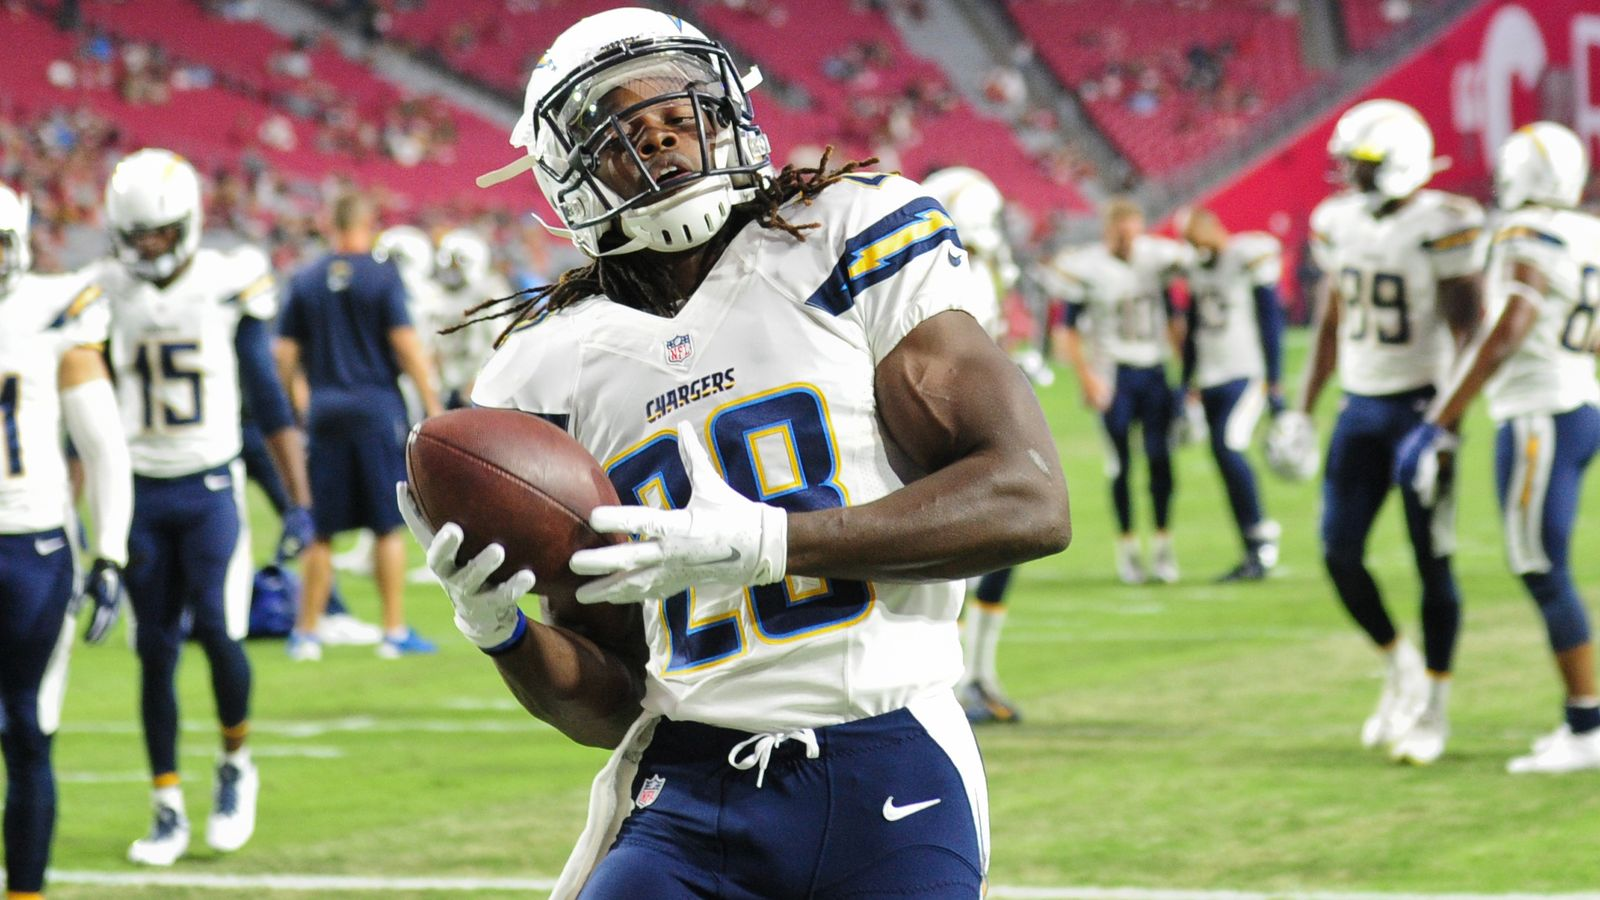 Quel impact pour le RB rookie Melvin Gordon ? (USA Today)